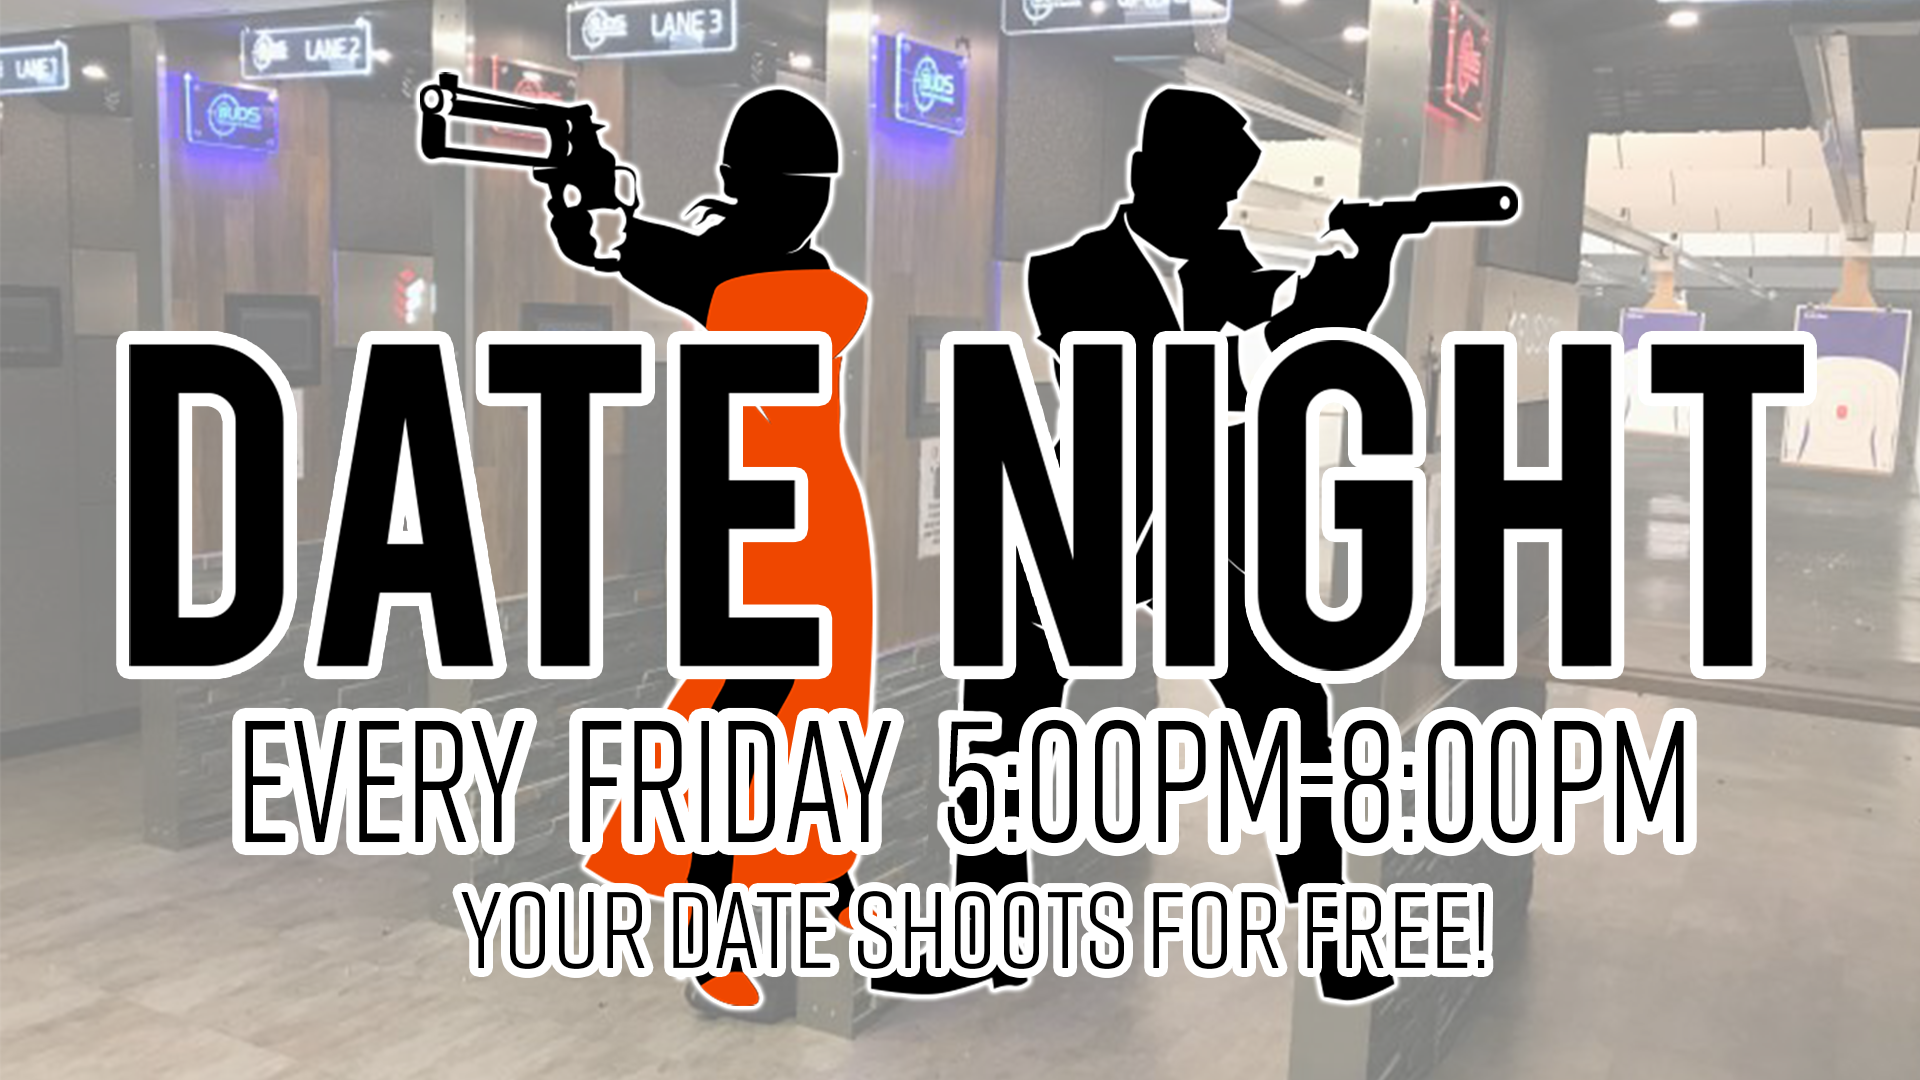 Date Night at Buds Gun Shop & Range